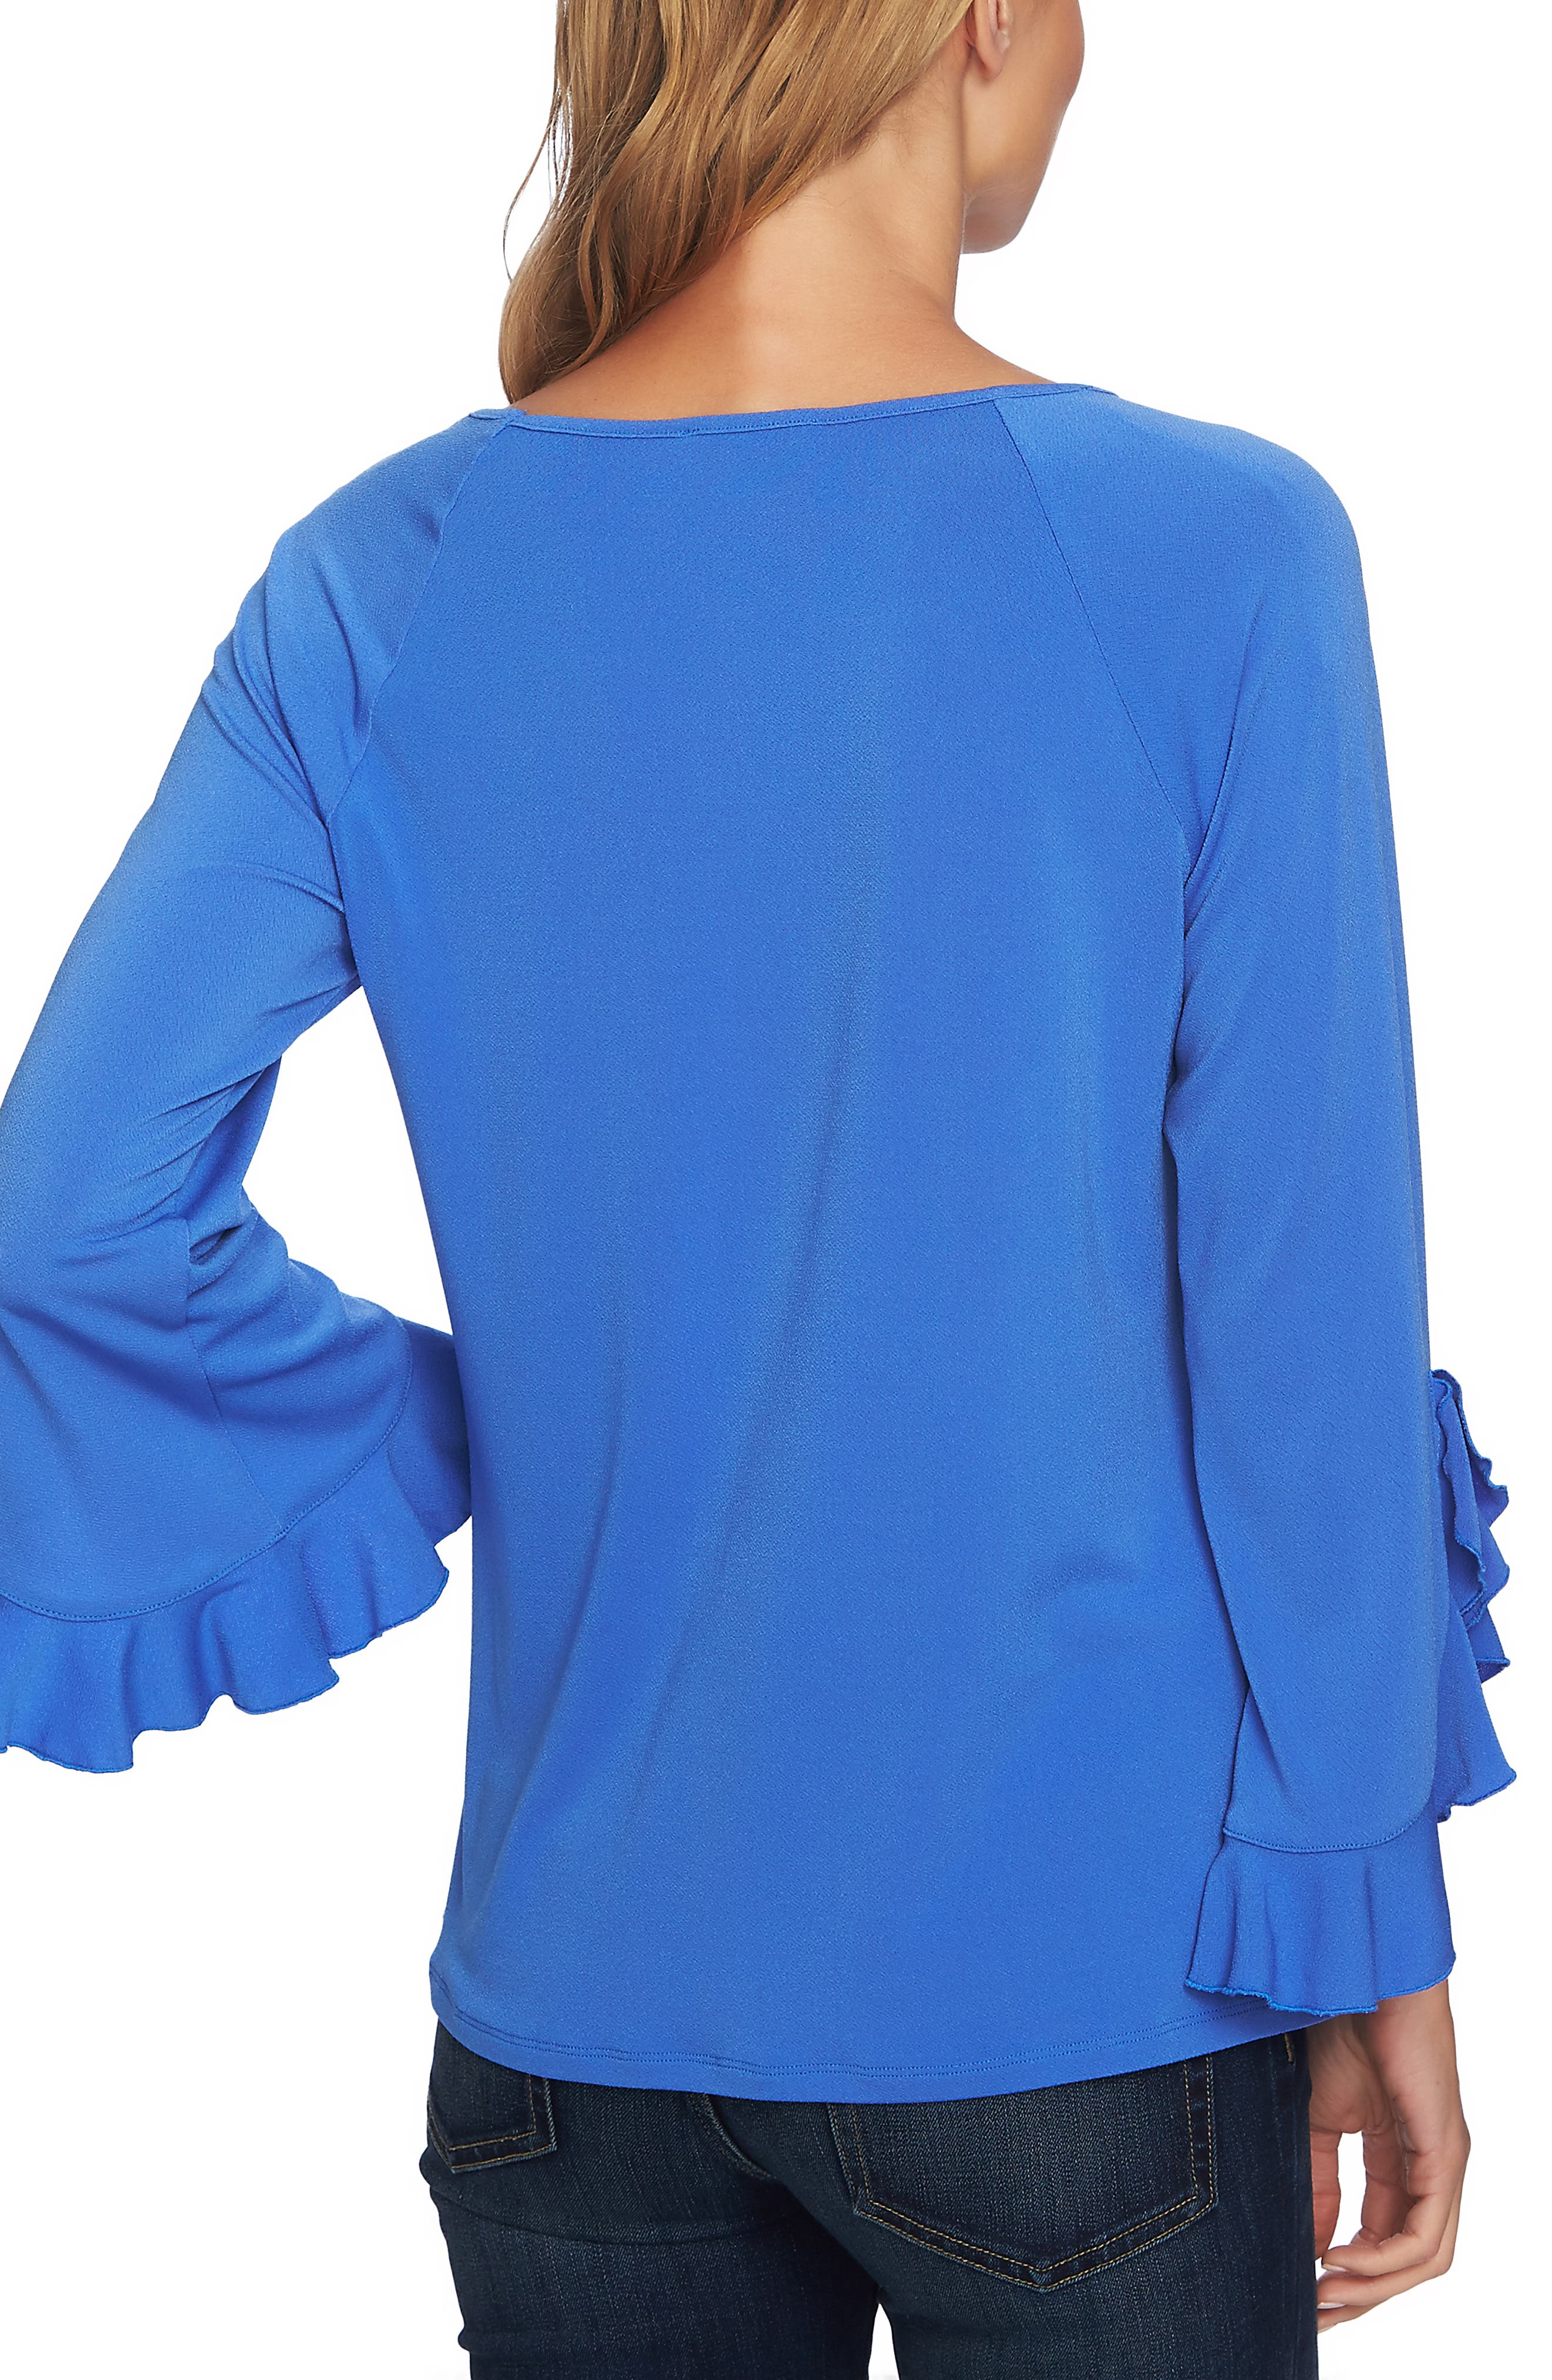 Ruffle Bell Sleeve Top,                             Alternate thumbnail 2, color,                             RICH PERI